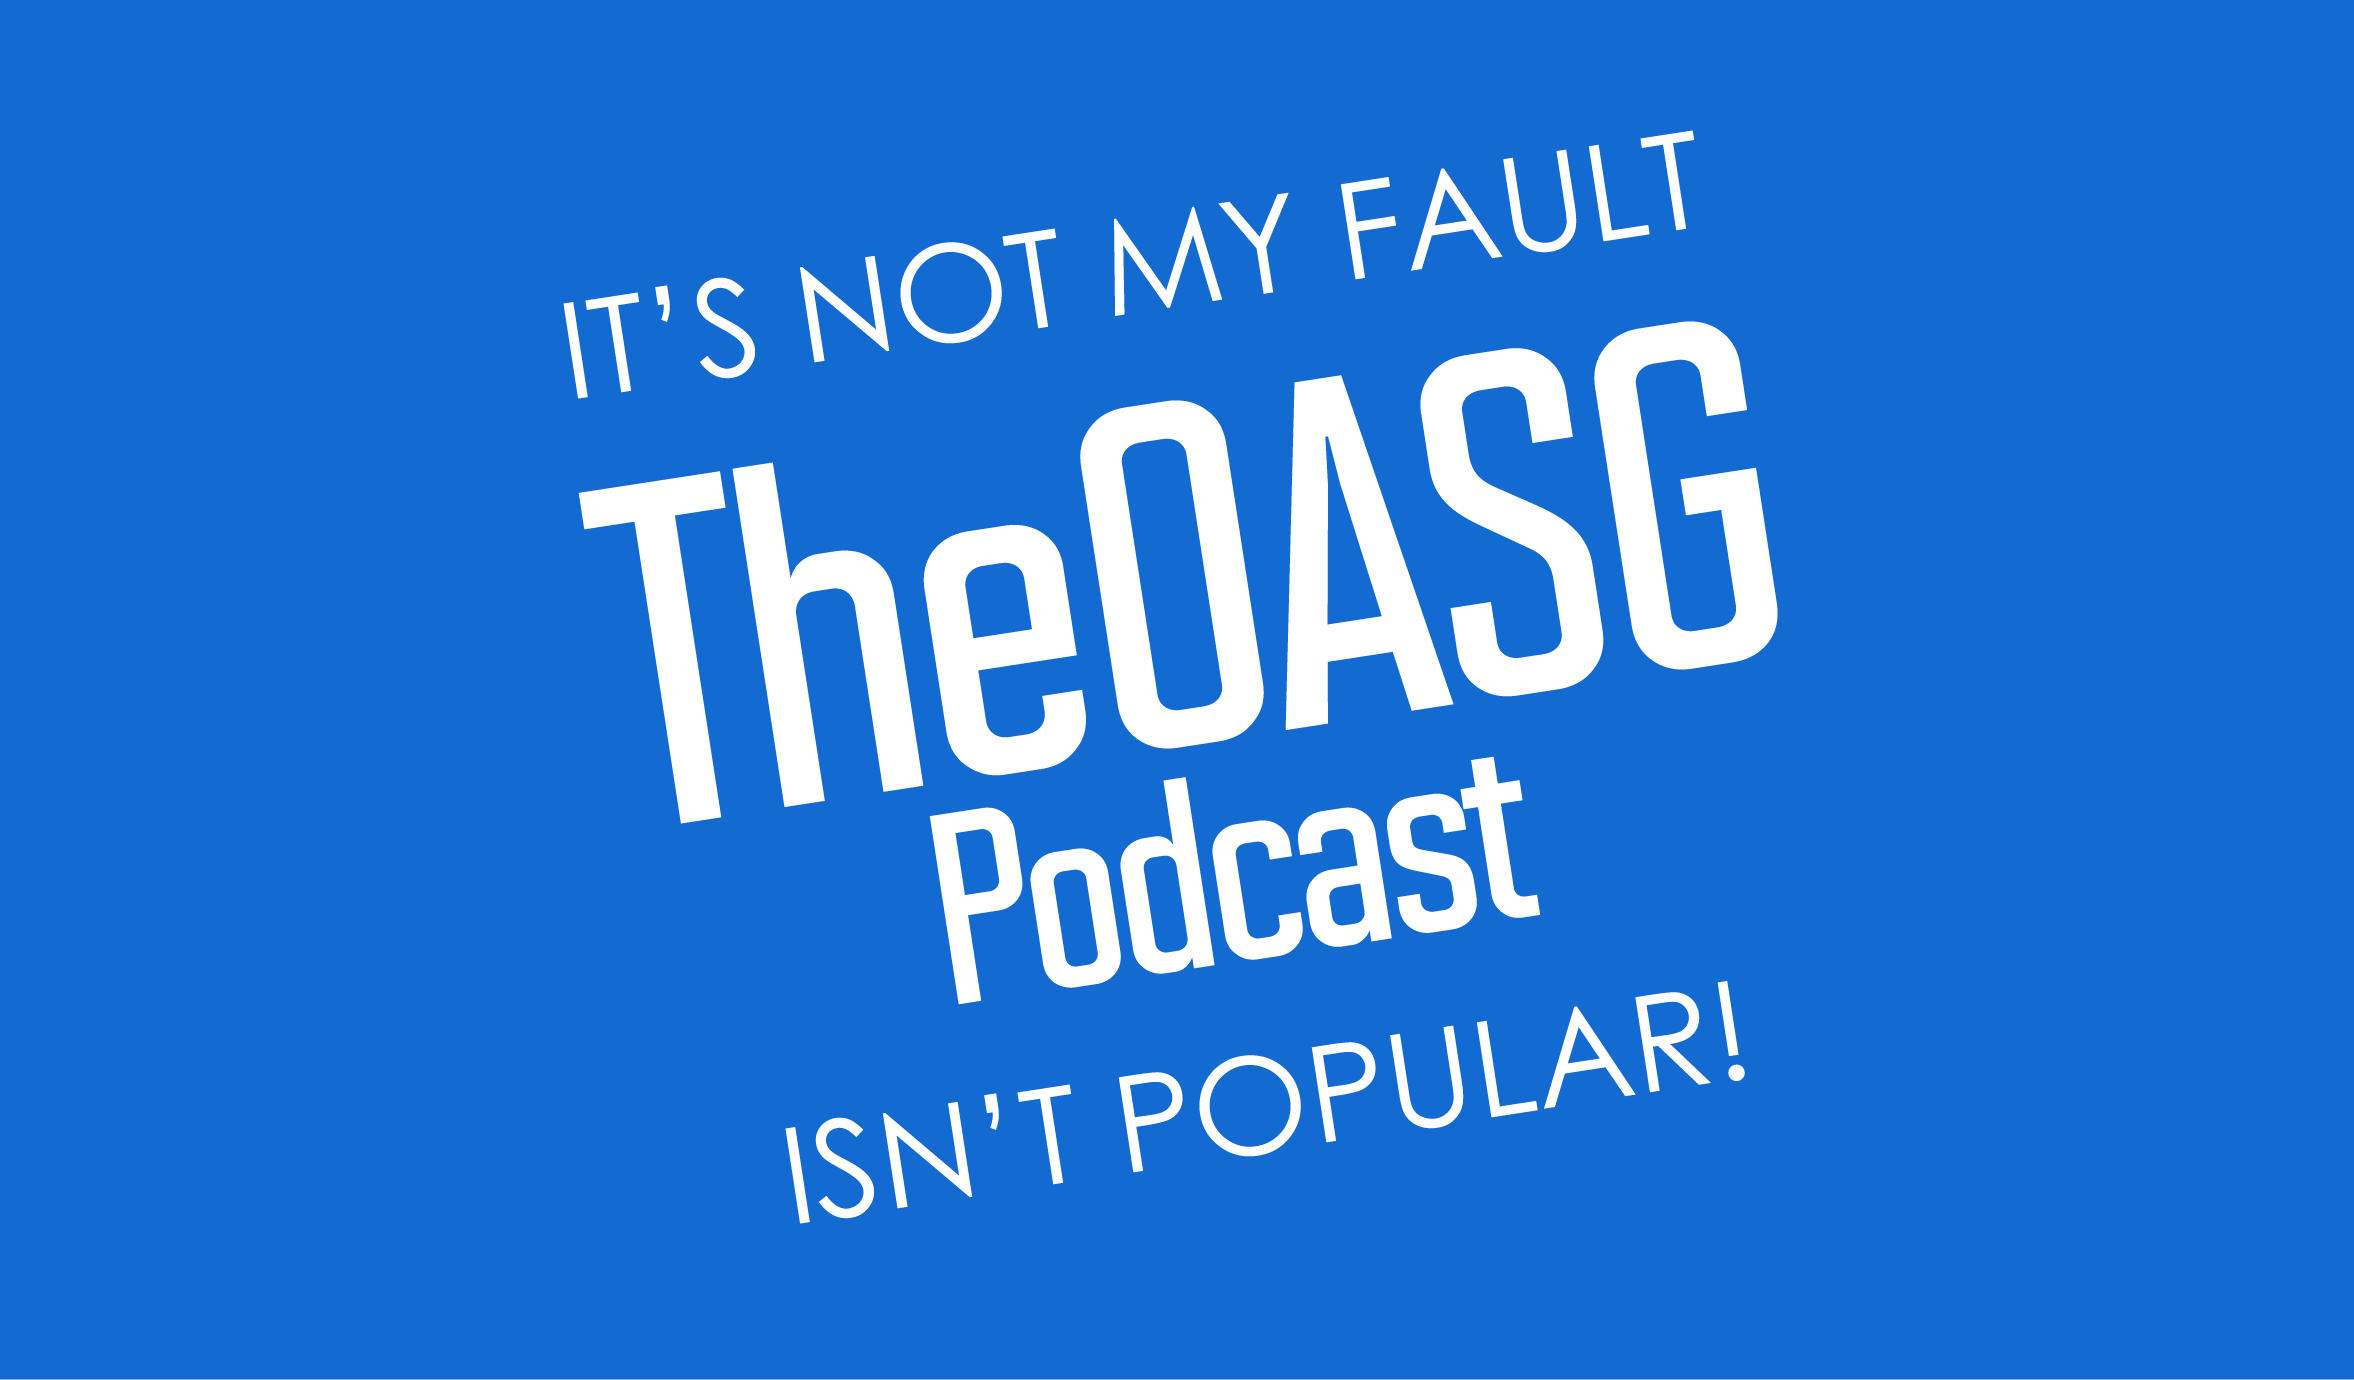 TheOASG Podcast Episode 122: Back to Normal Recording Length Edition